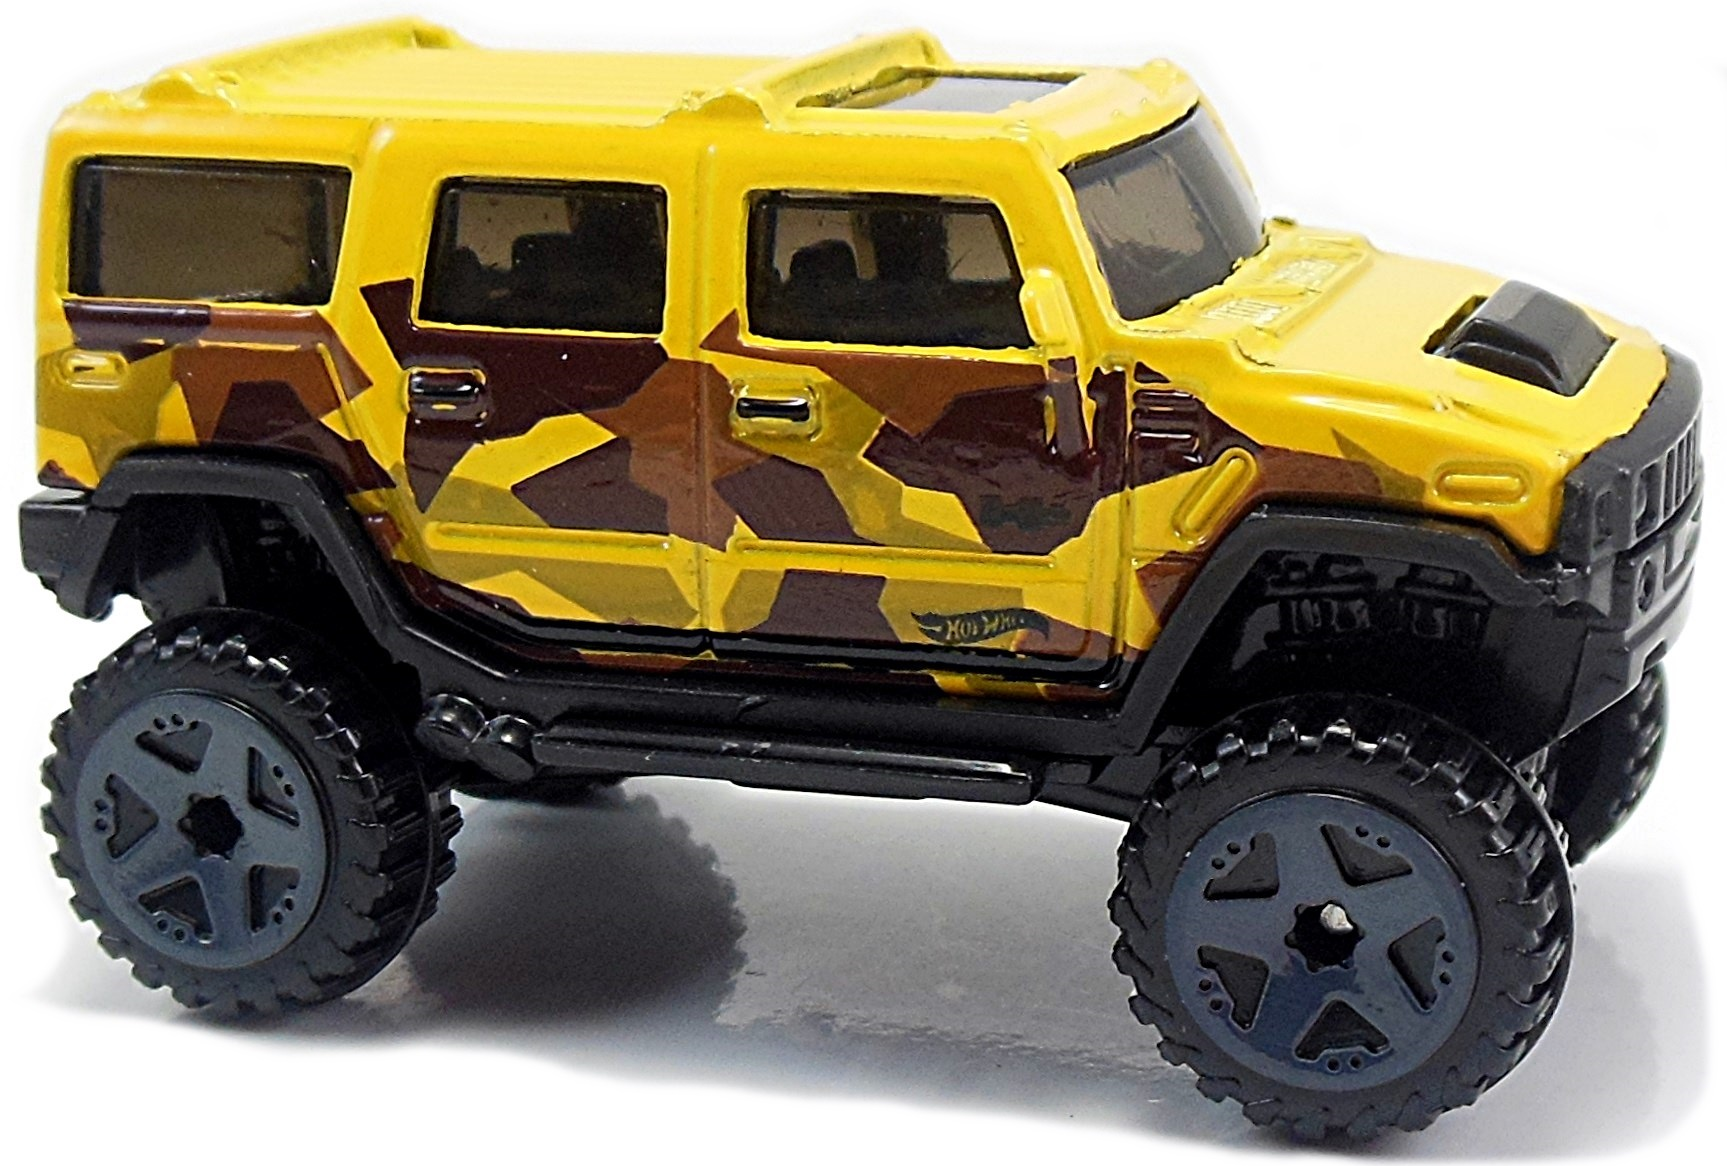 Hummer H2 lifted 68mm 2006